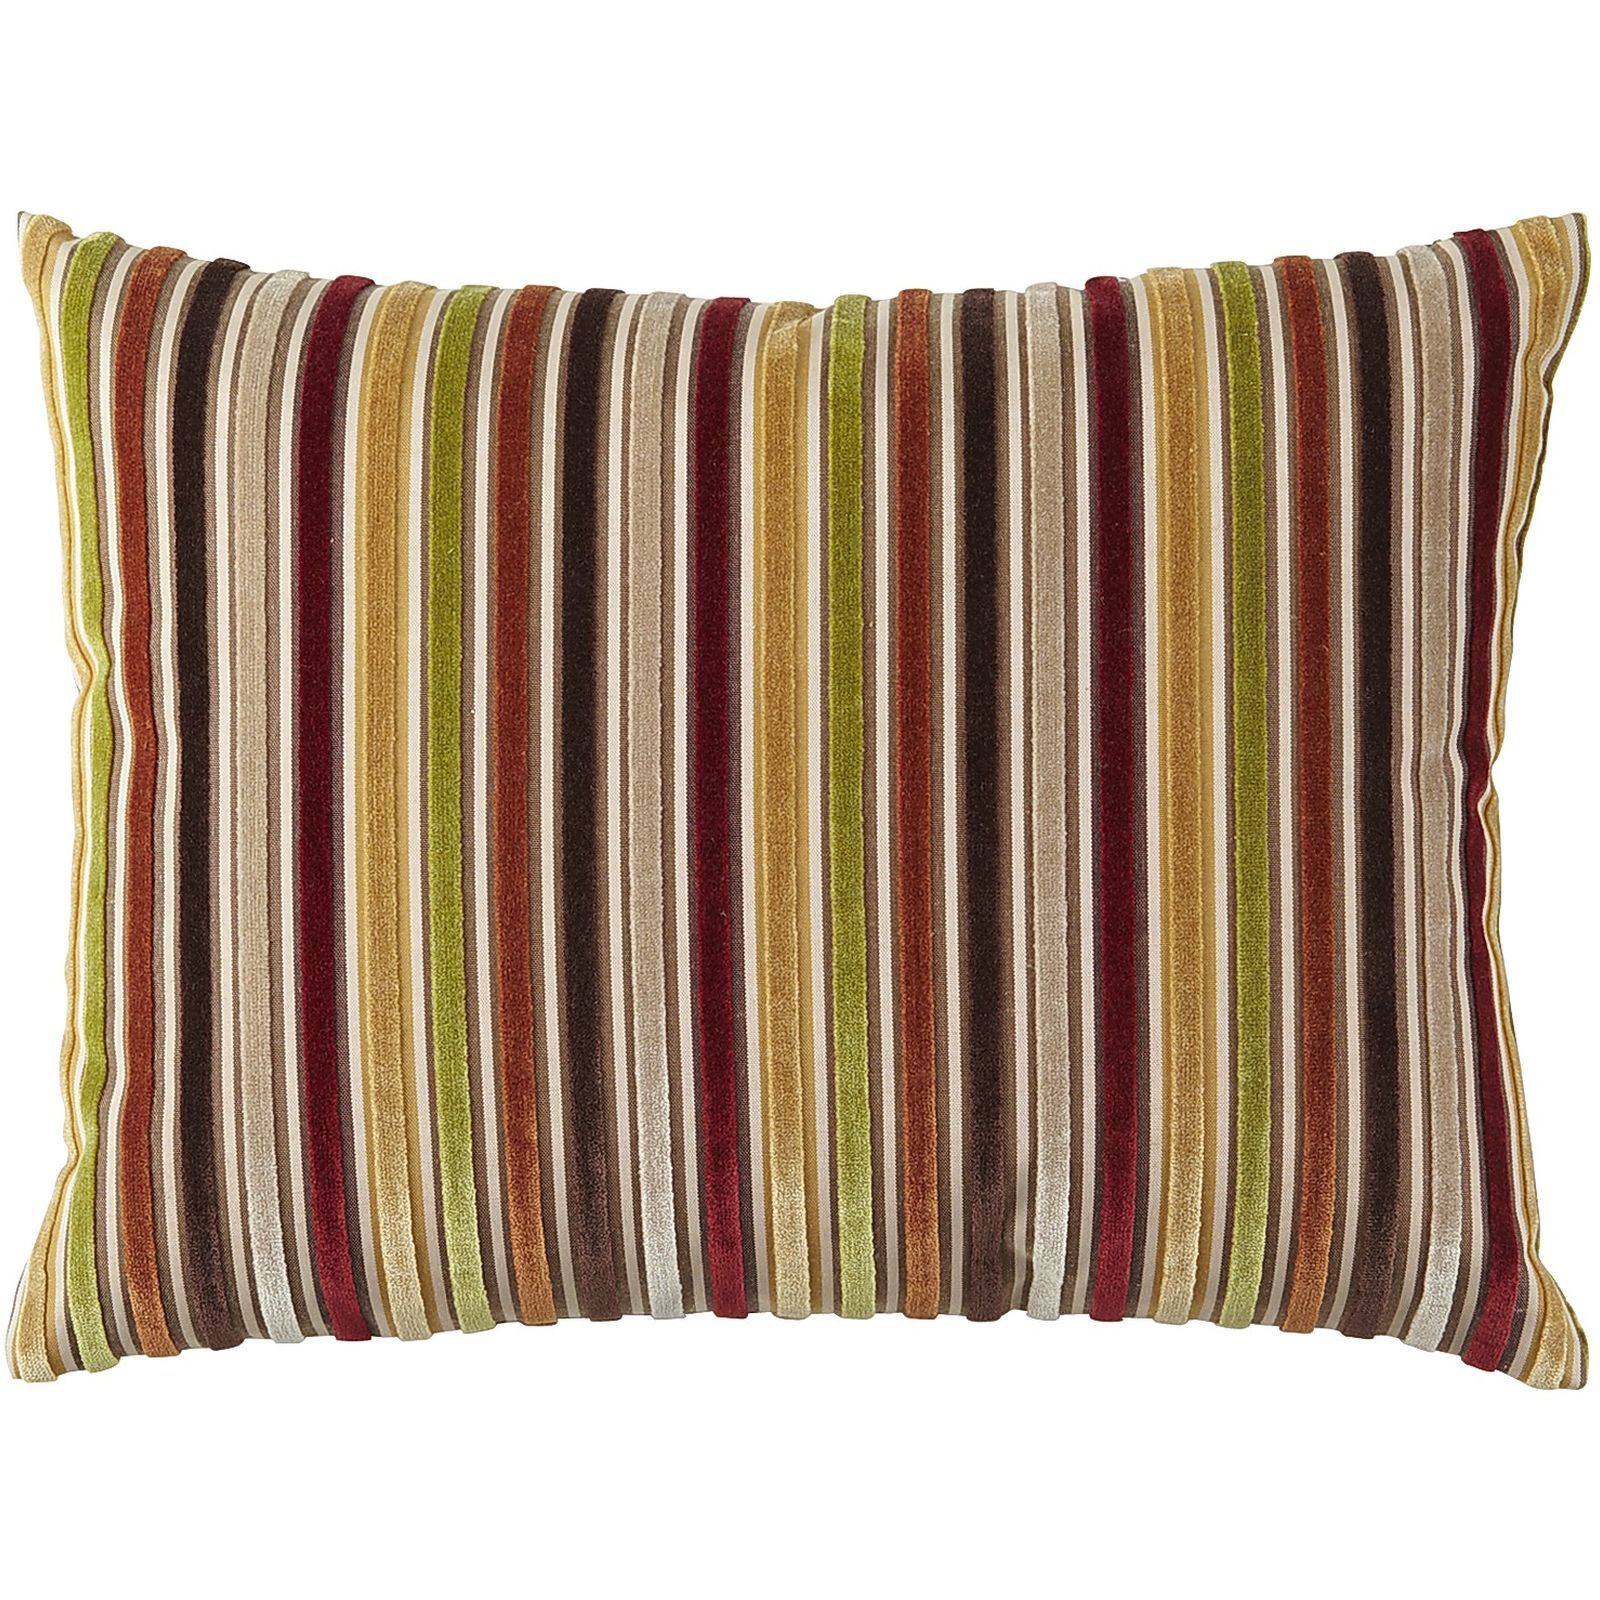 Decorative pillows with blue brown and yellow - Warm Velvet Striped Pillow